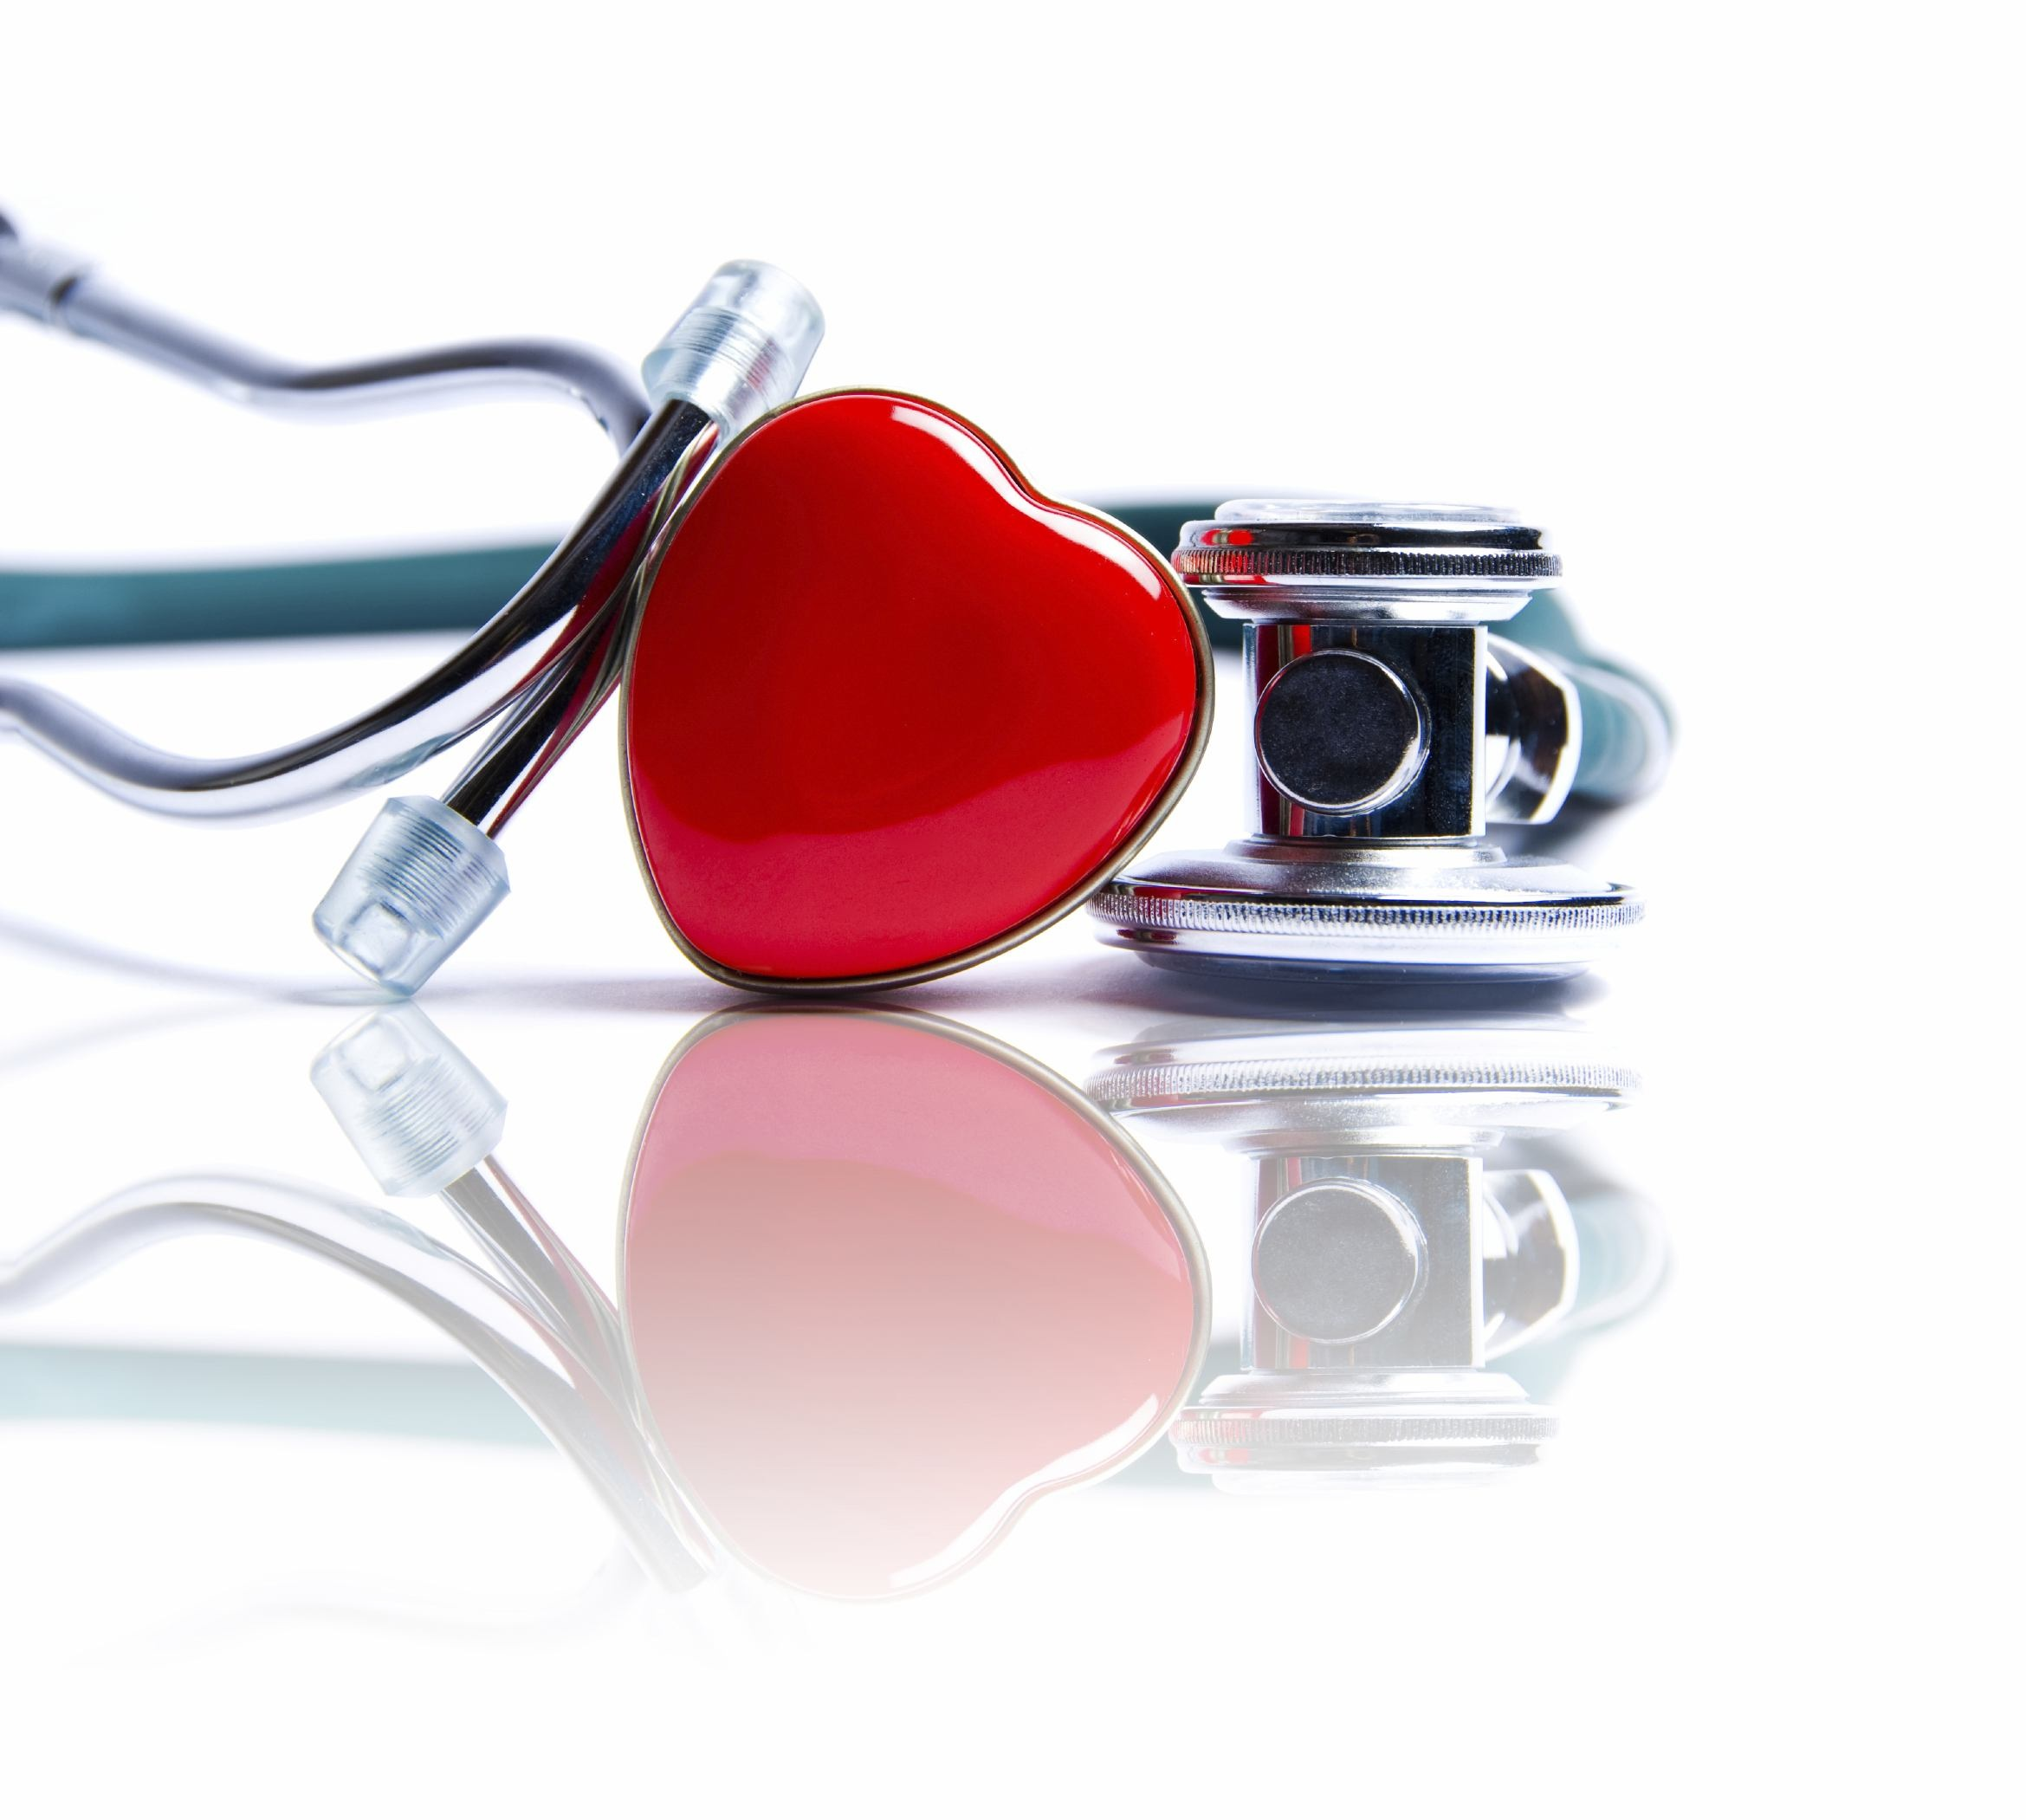 Stethoscope on a table with a red heart